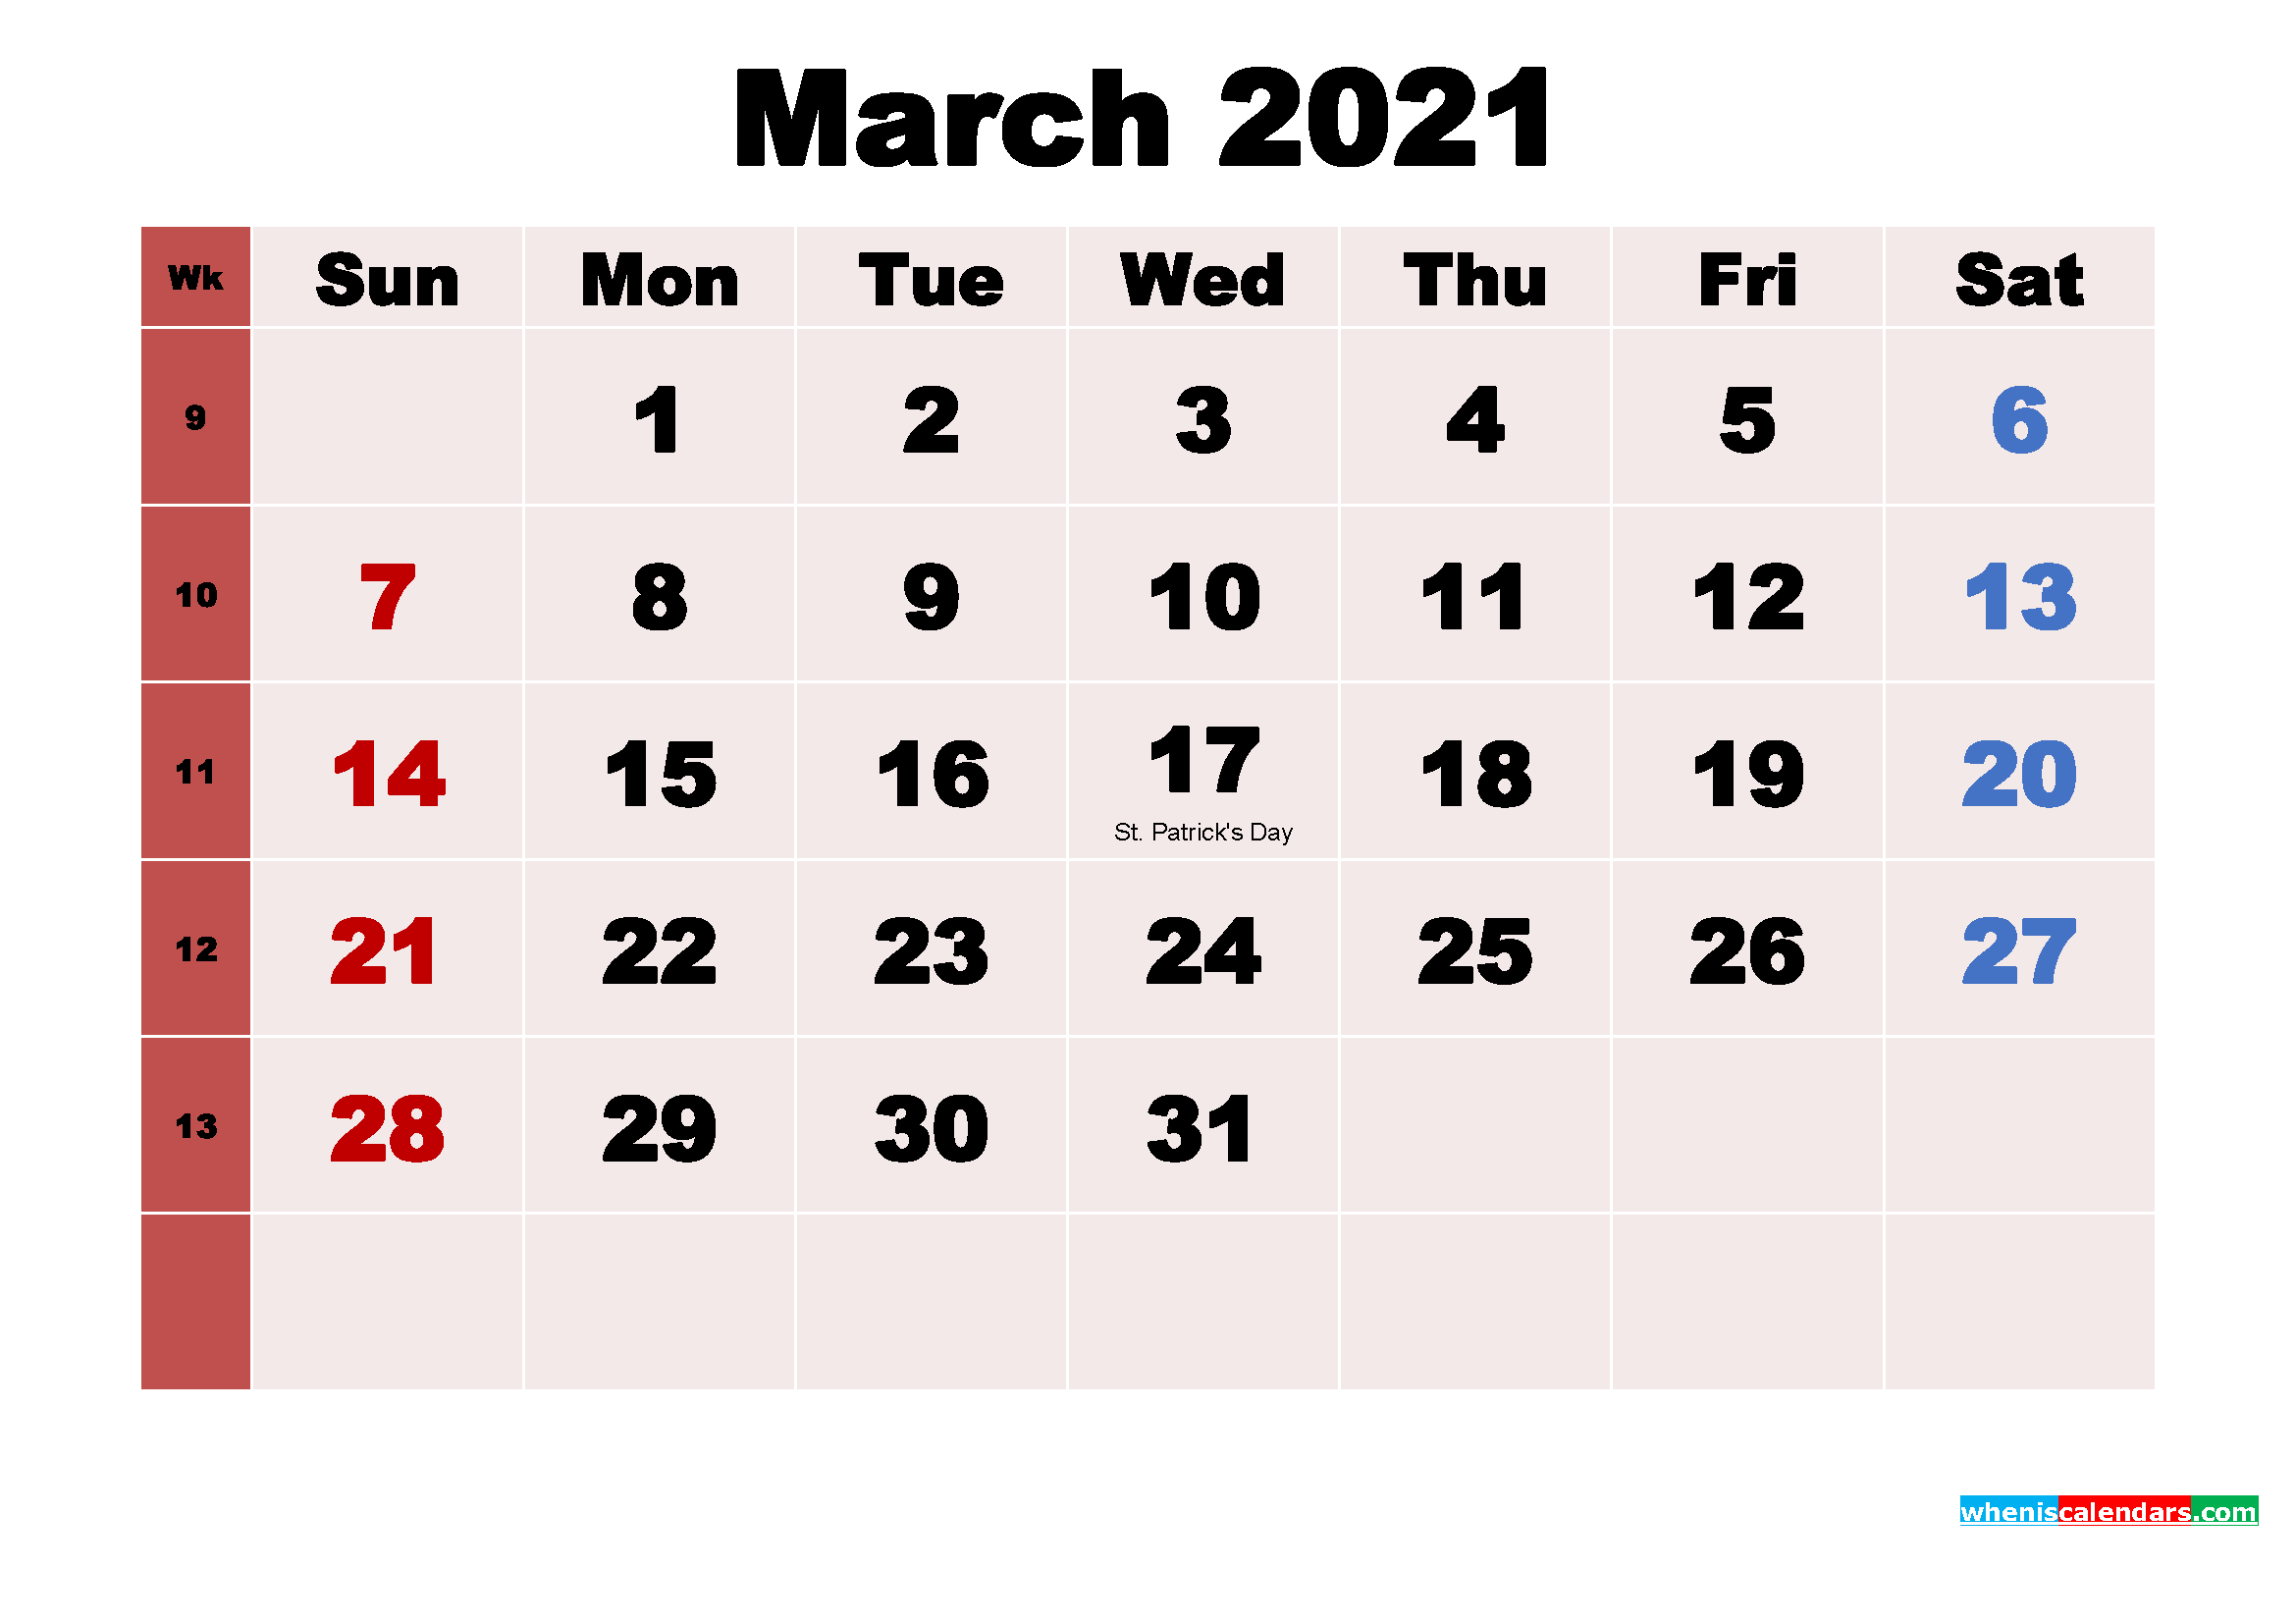 March 2021 Calendar Wallpaper Free Download